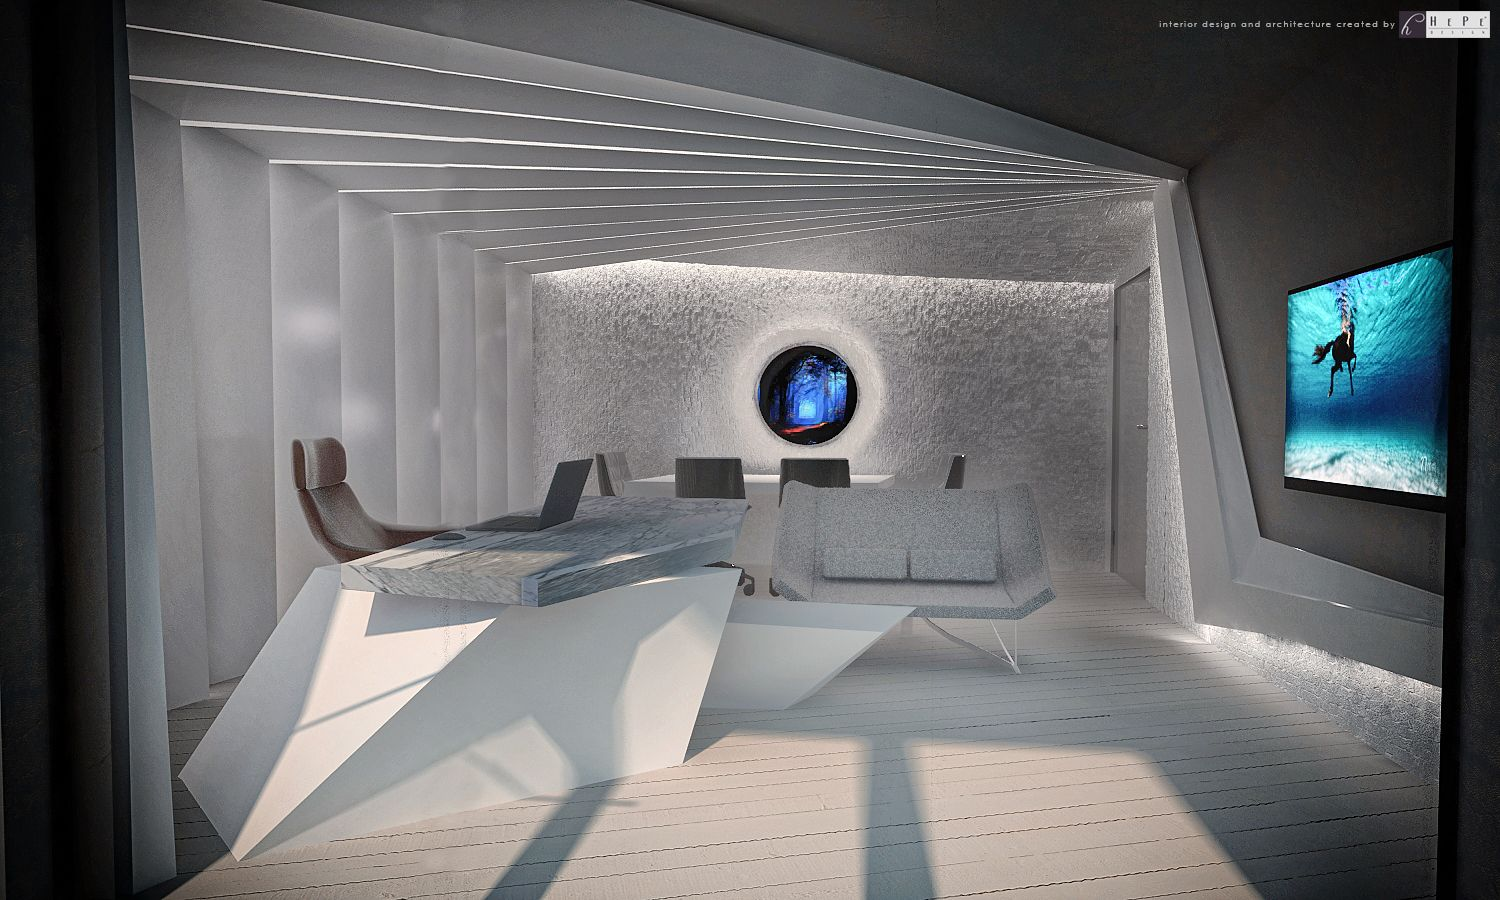 USC Financial Consultancy Manager Office Interior Design And Architecture Created By HePeDesign